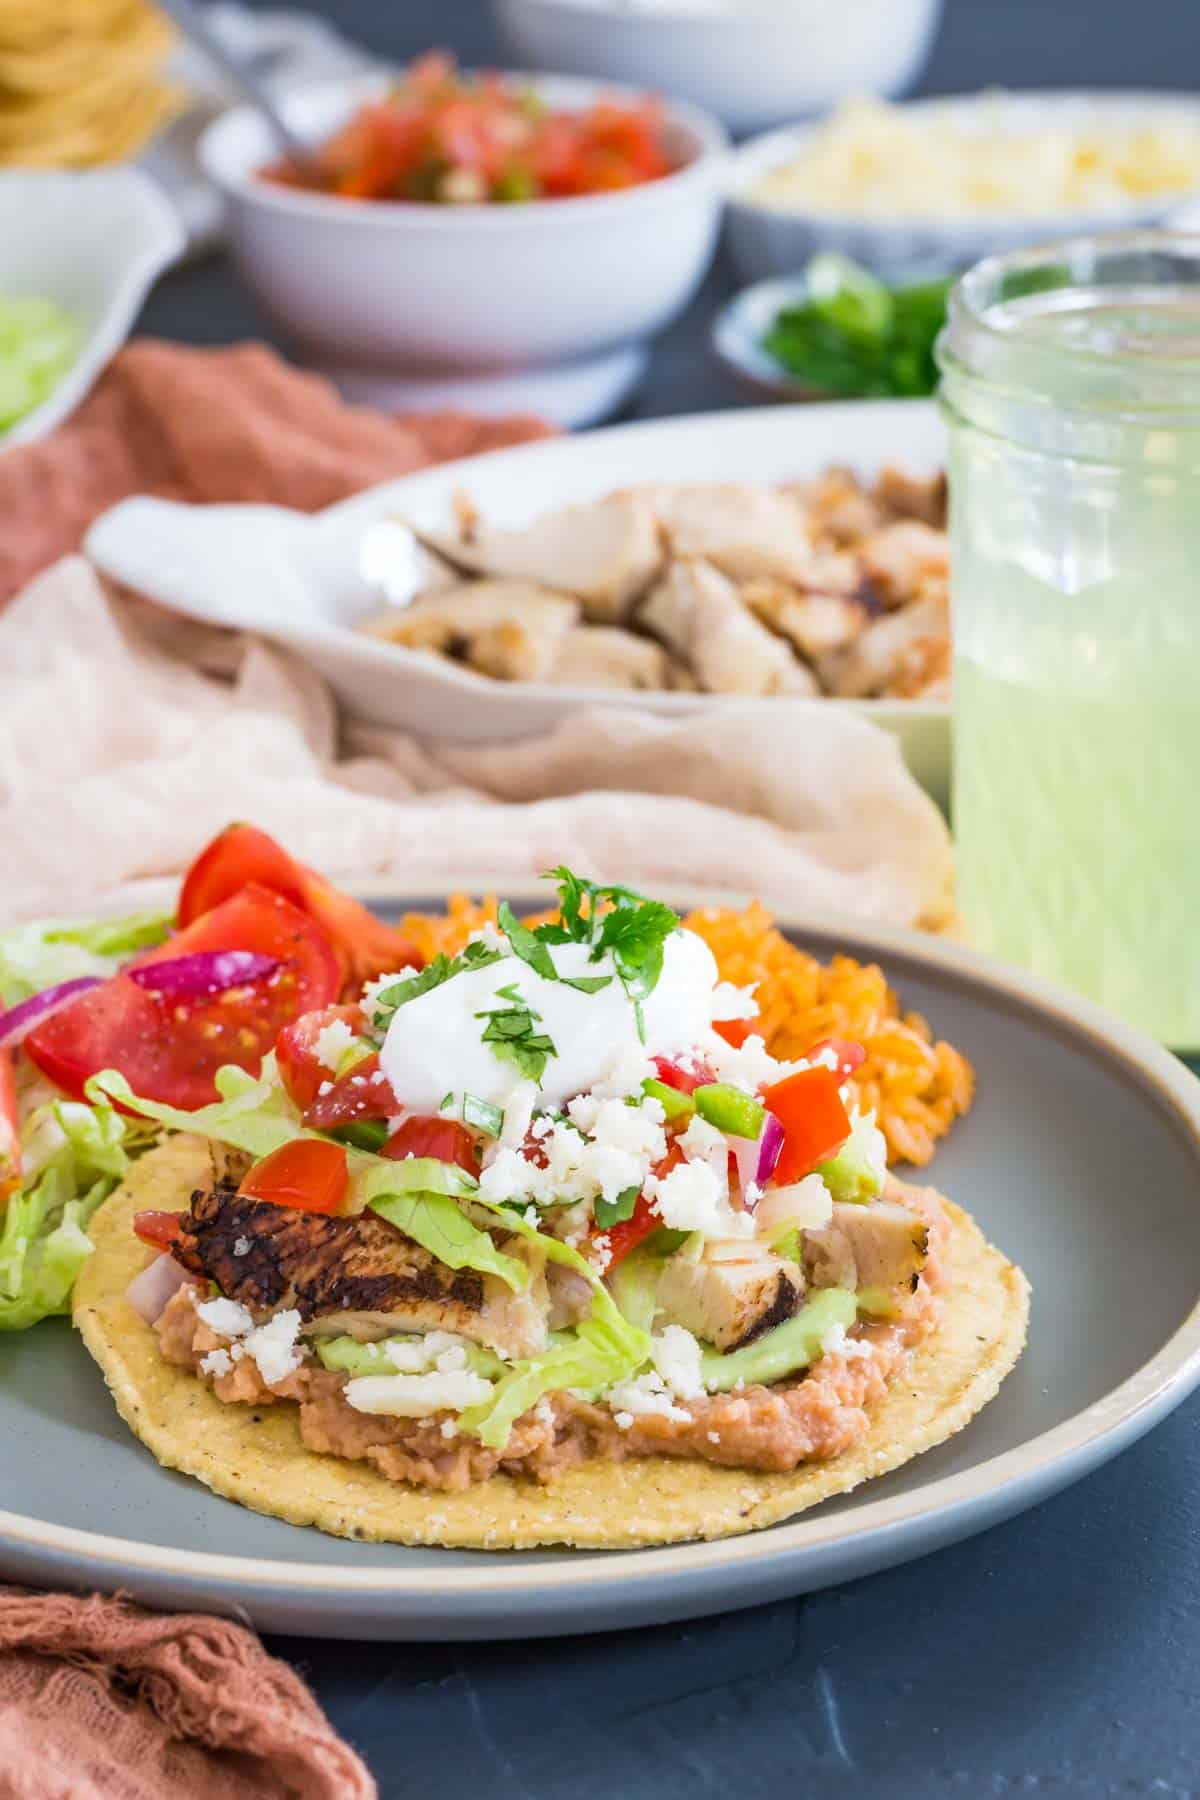 a chicken tostada on a plate with rice and bowls of all of the toppings in the background